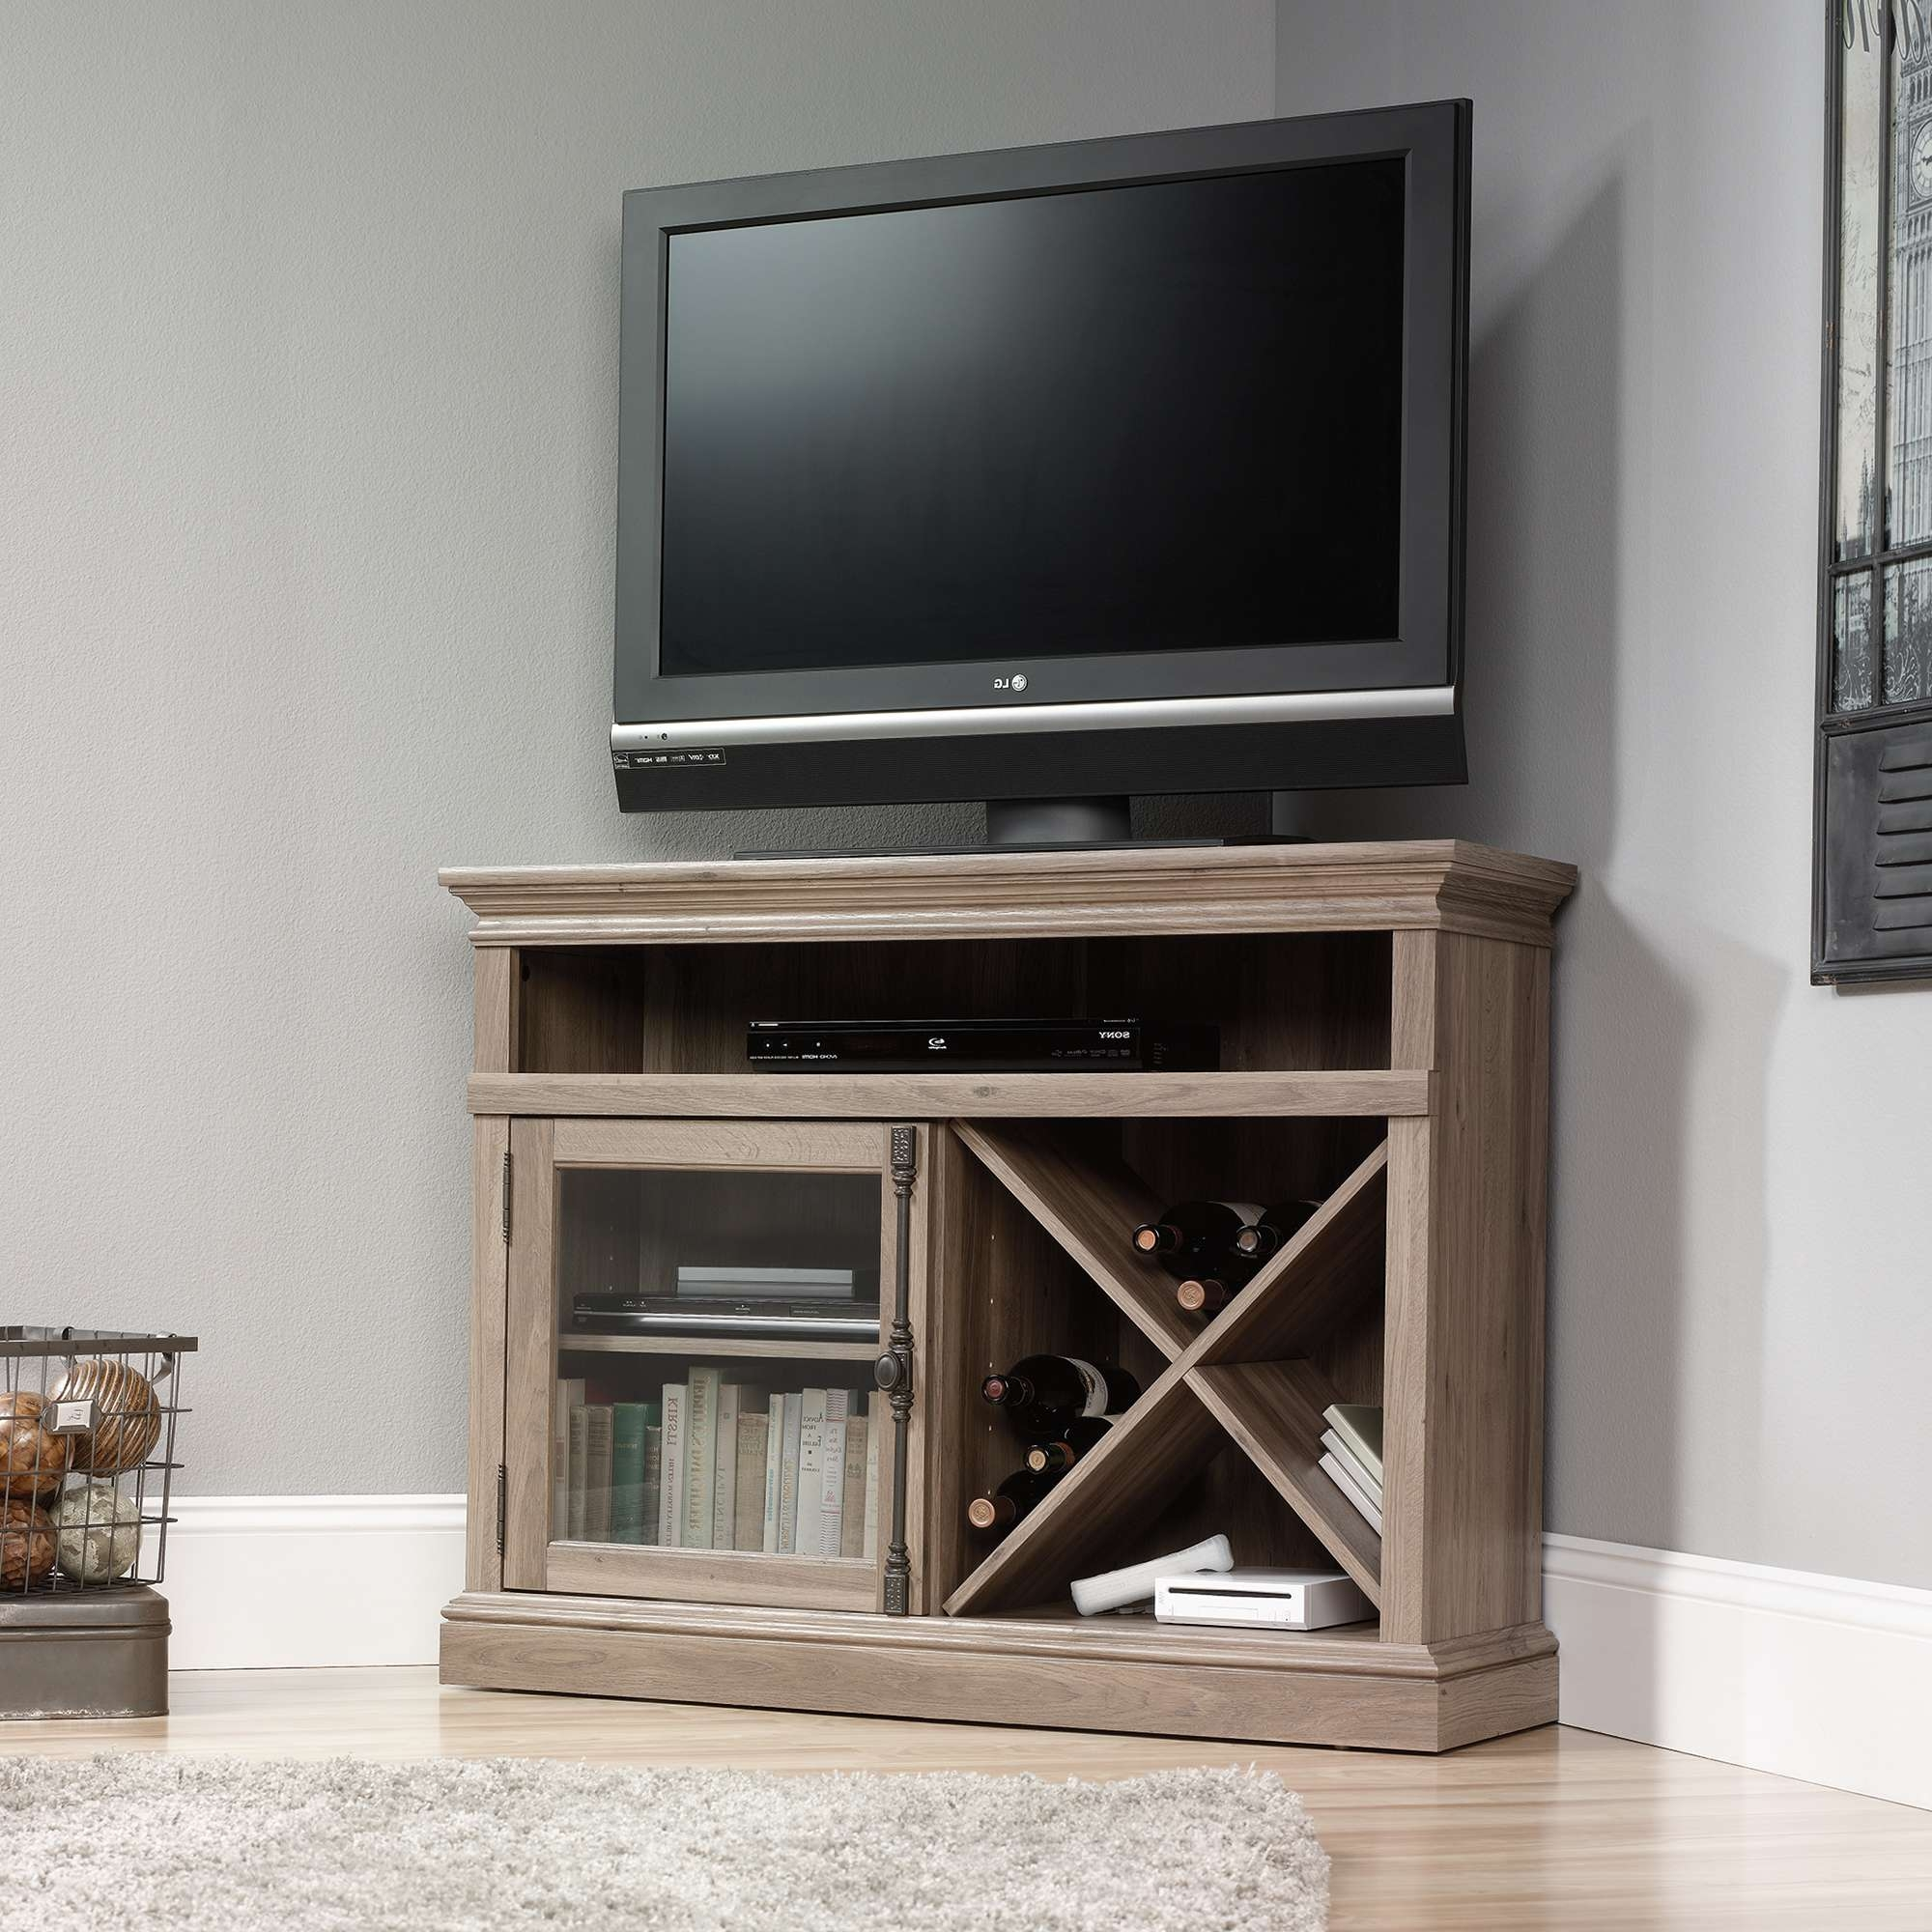 Wooden Corner Tv Stand With Single Glass Cabinet Door And Lattice With Regard To Single Shelf Tv Stands (View 20 of 20)